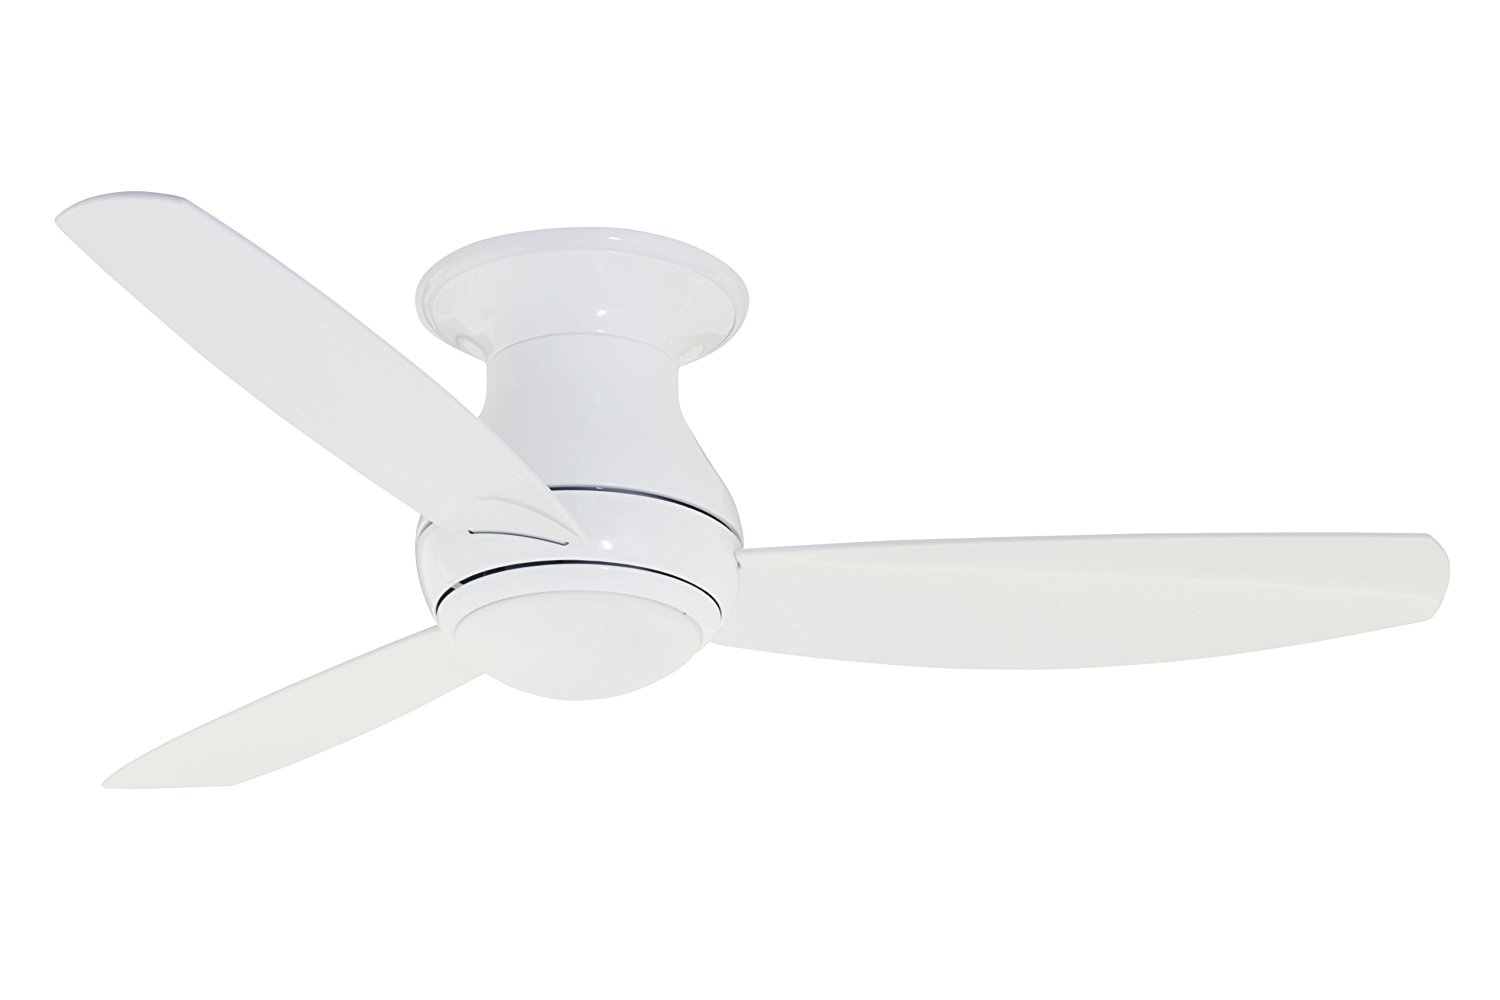 Emerson Ceiling Fans CF152WW Curva Sky 52-Inch Modern Low Profile/Hugger Indoor Outdoor Ceiling Fan With Light And Remote, Wet Rated, Appliance White Finish